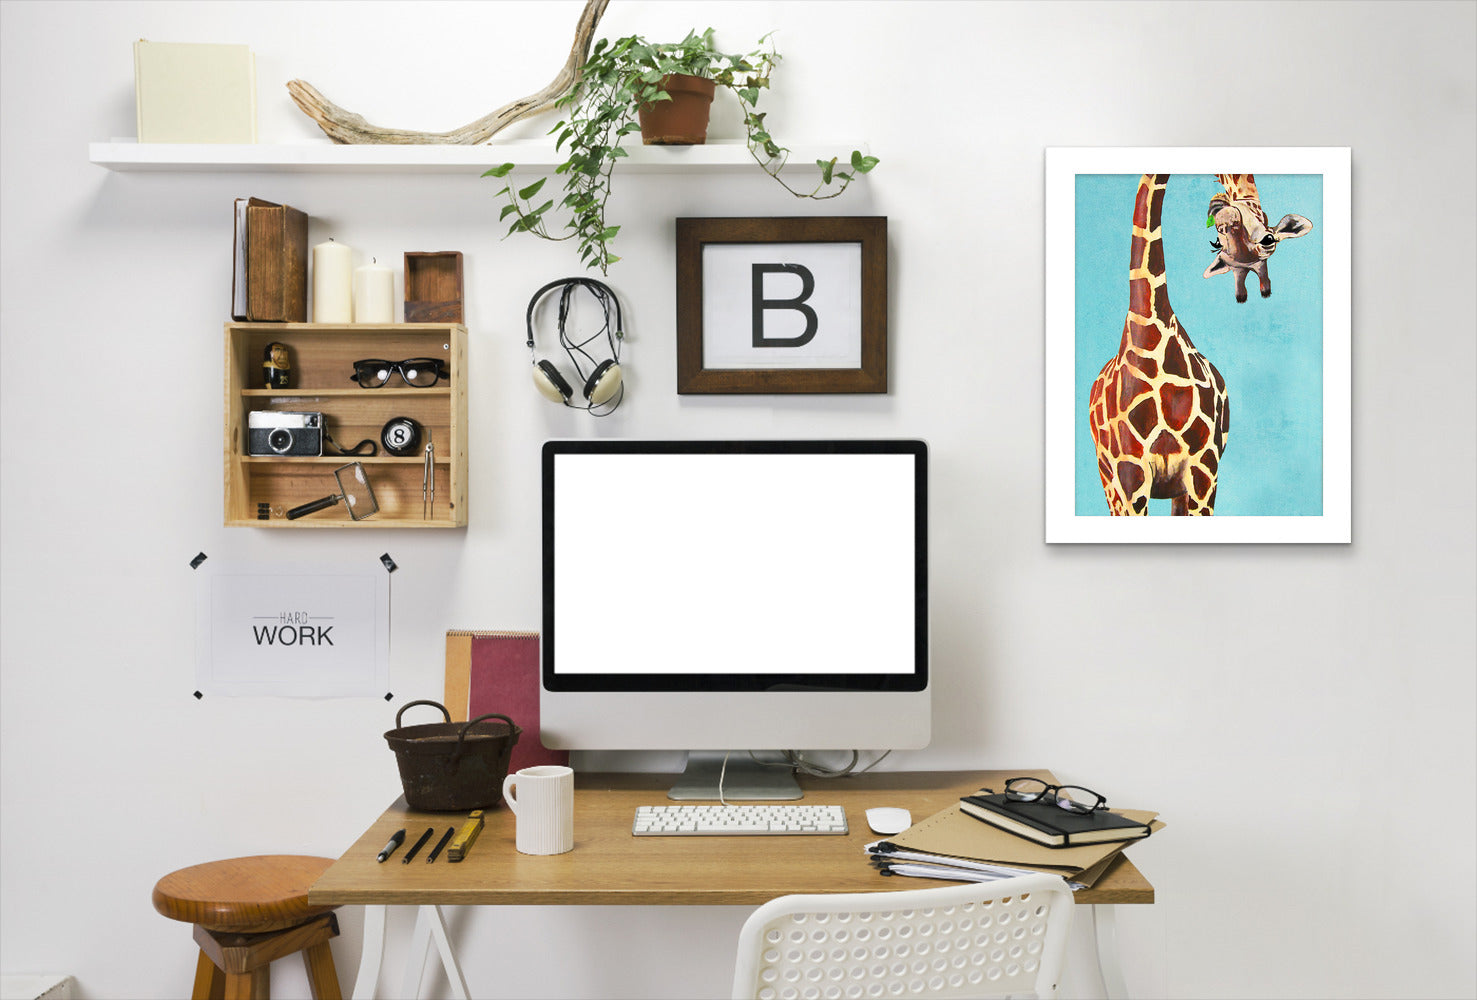 Giraffe With Green Leave By Coco De Paris - White Framed Print